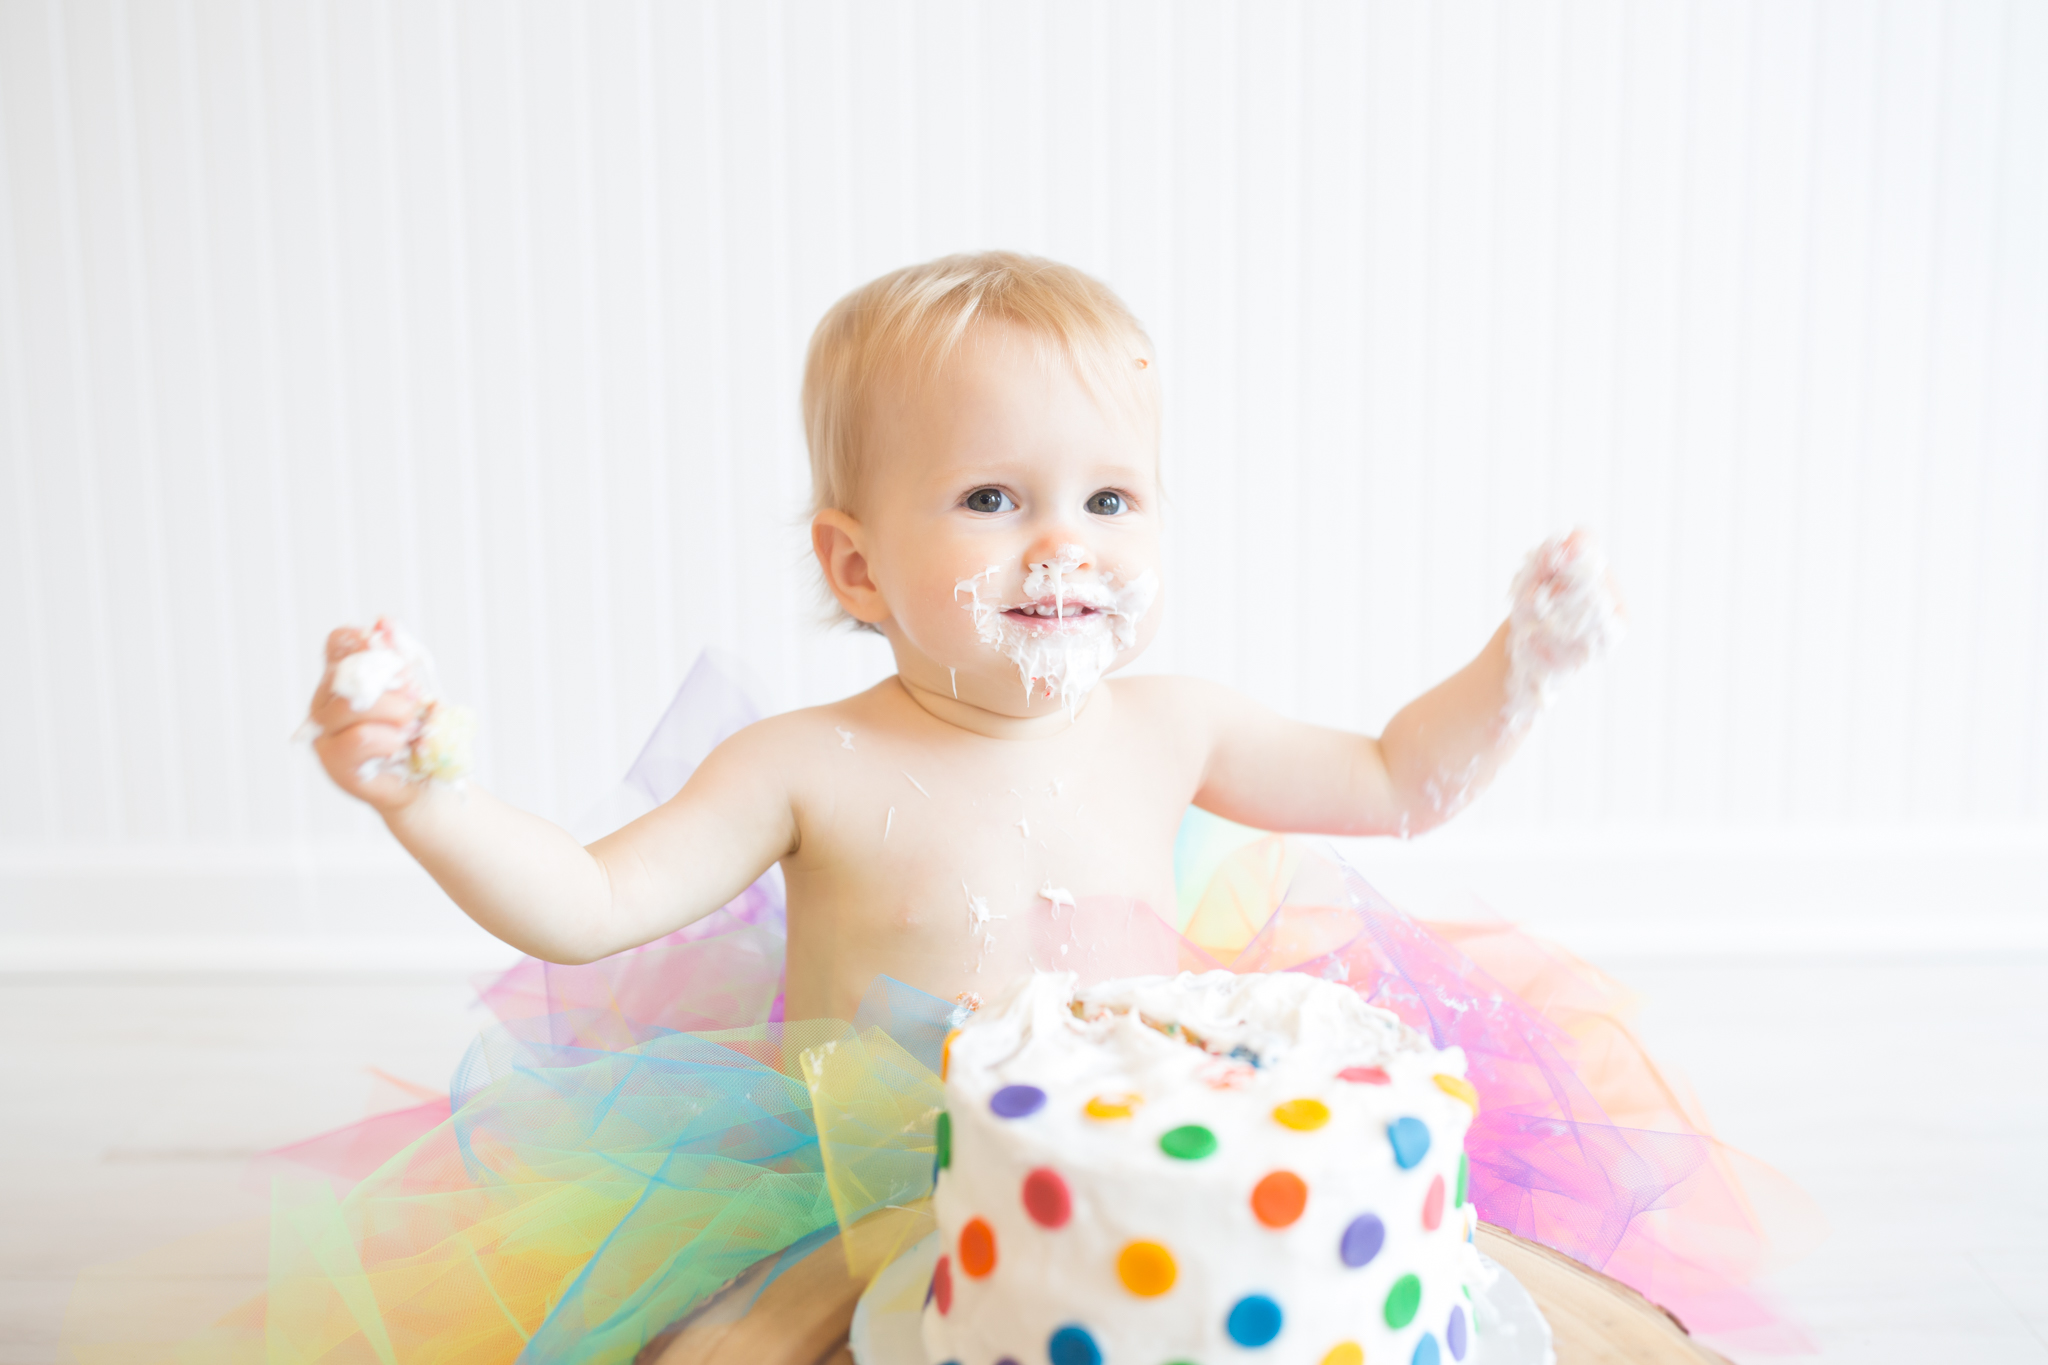 Milestone cake smash Newborn Studio Session | Cara Peterson Photography Rockford IL-15.jpg